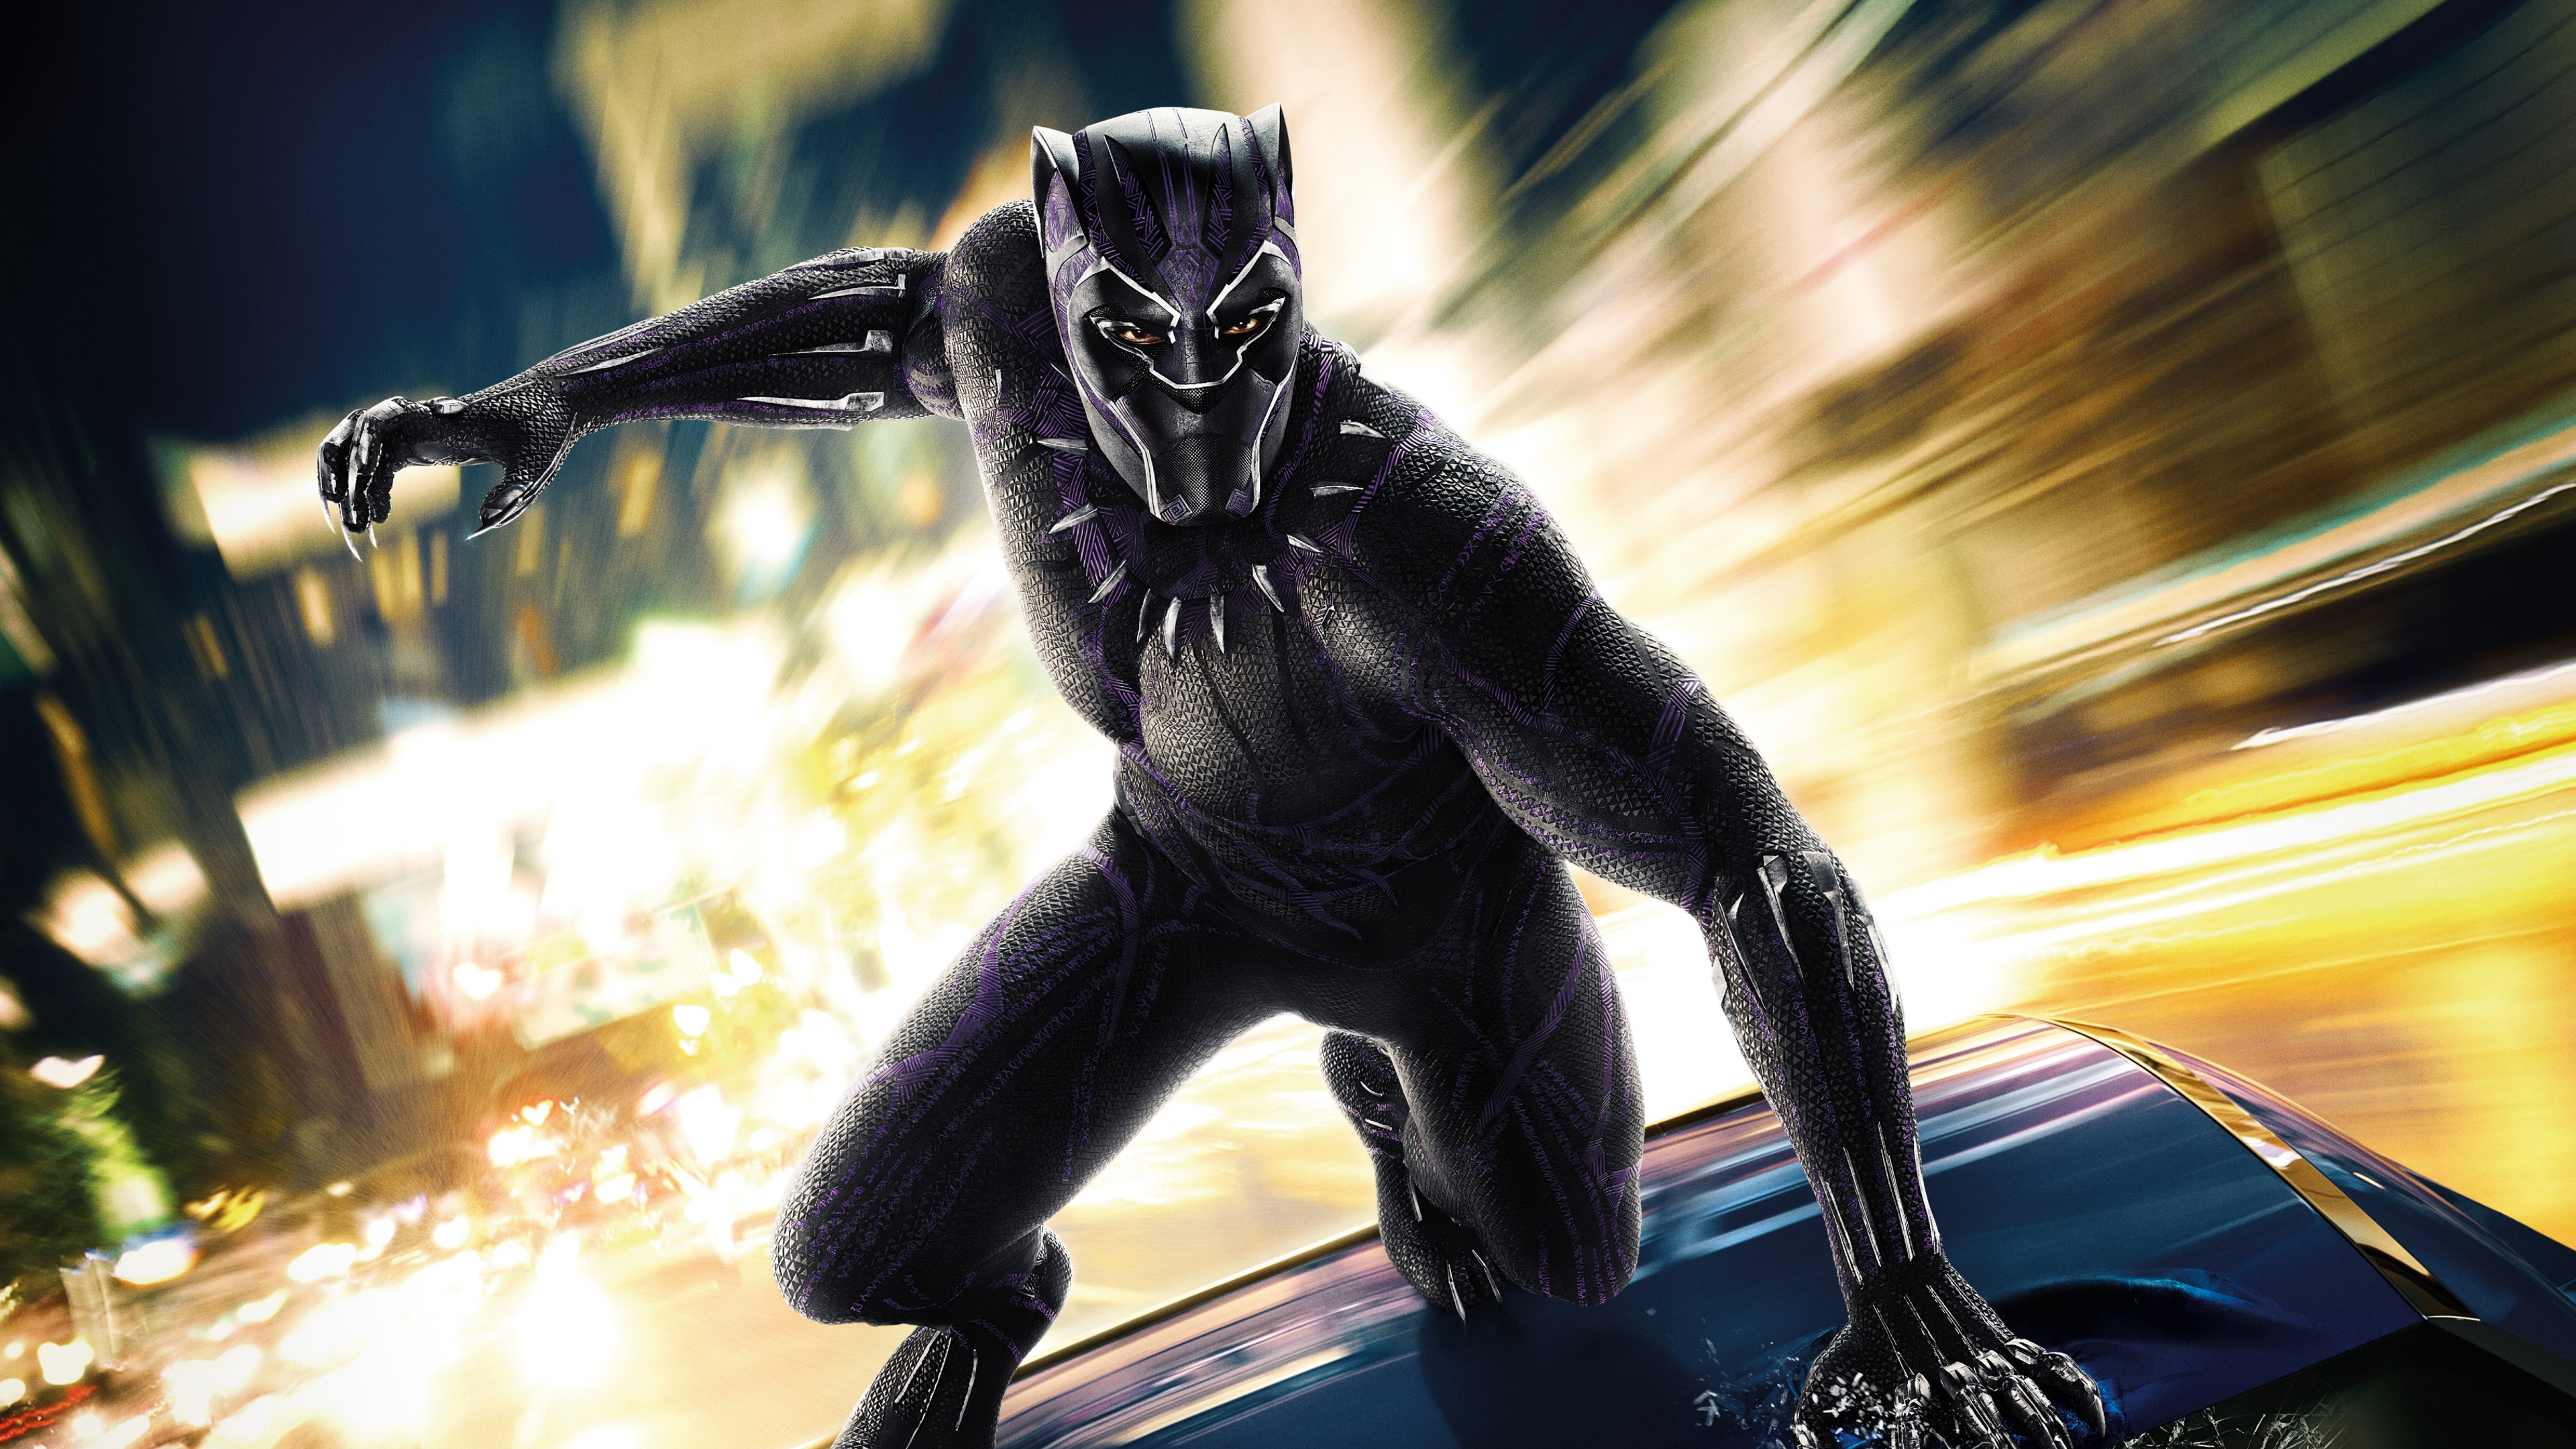 Download Wallpaper Windows 7 3d Black Panther 2018 Hd 5k Wallpapers Hd Wallpapers Id